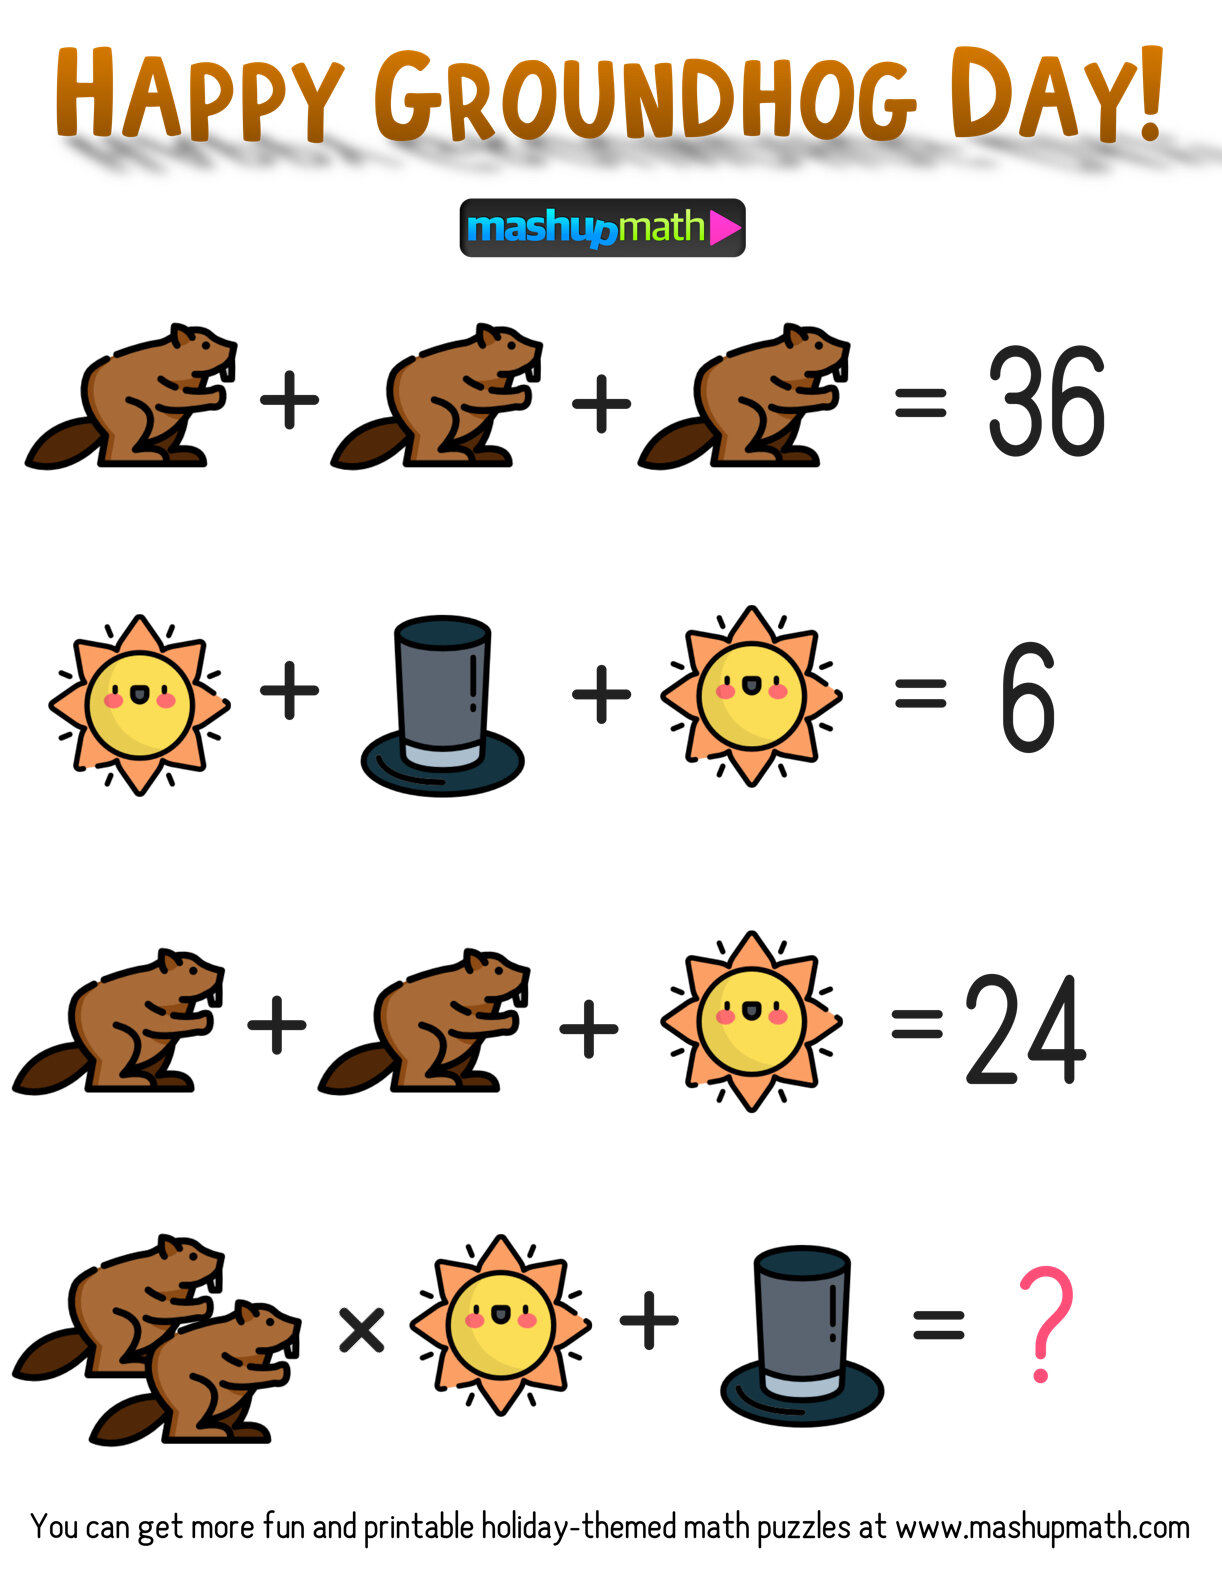 hight resolution of Free Groundhog Day Math Puzzle for Grades 3-8 — Mashup Math